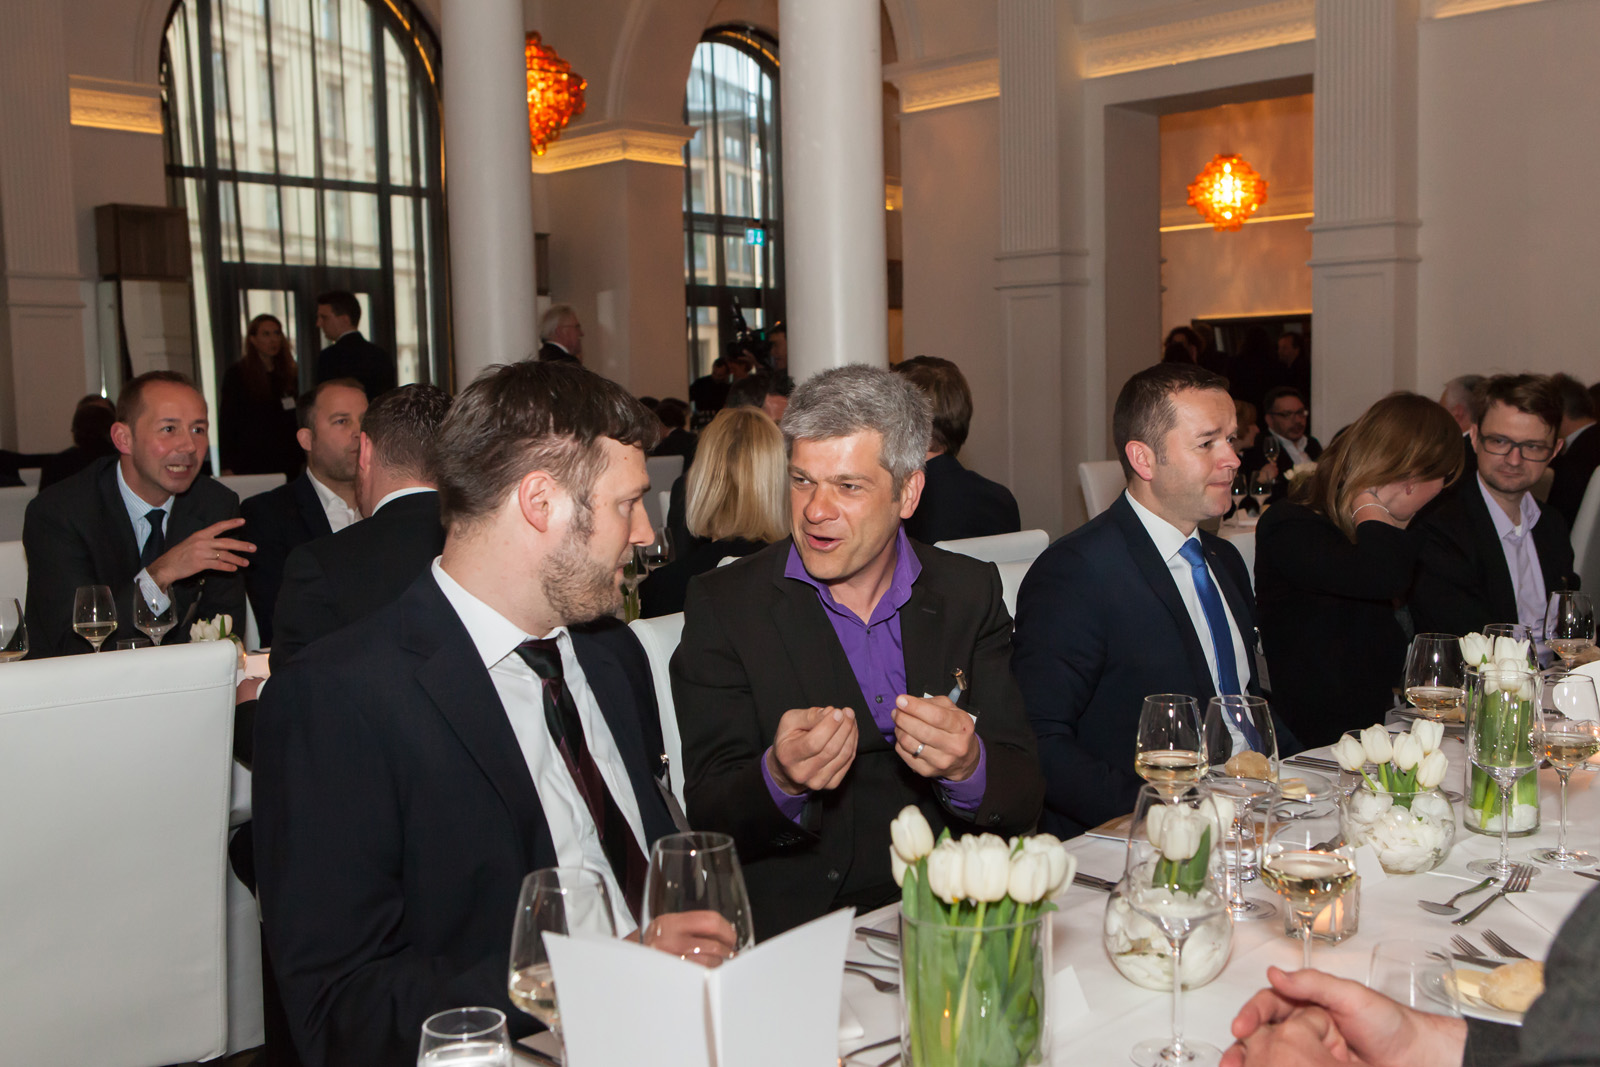 Jochen Franke, MEC, Winfried Hanuschik, Port Media, Alois Graf, Bankhaus DONNER & REUSCHEL (Foto: Bettina Theisinger)